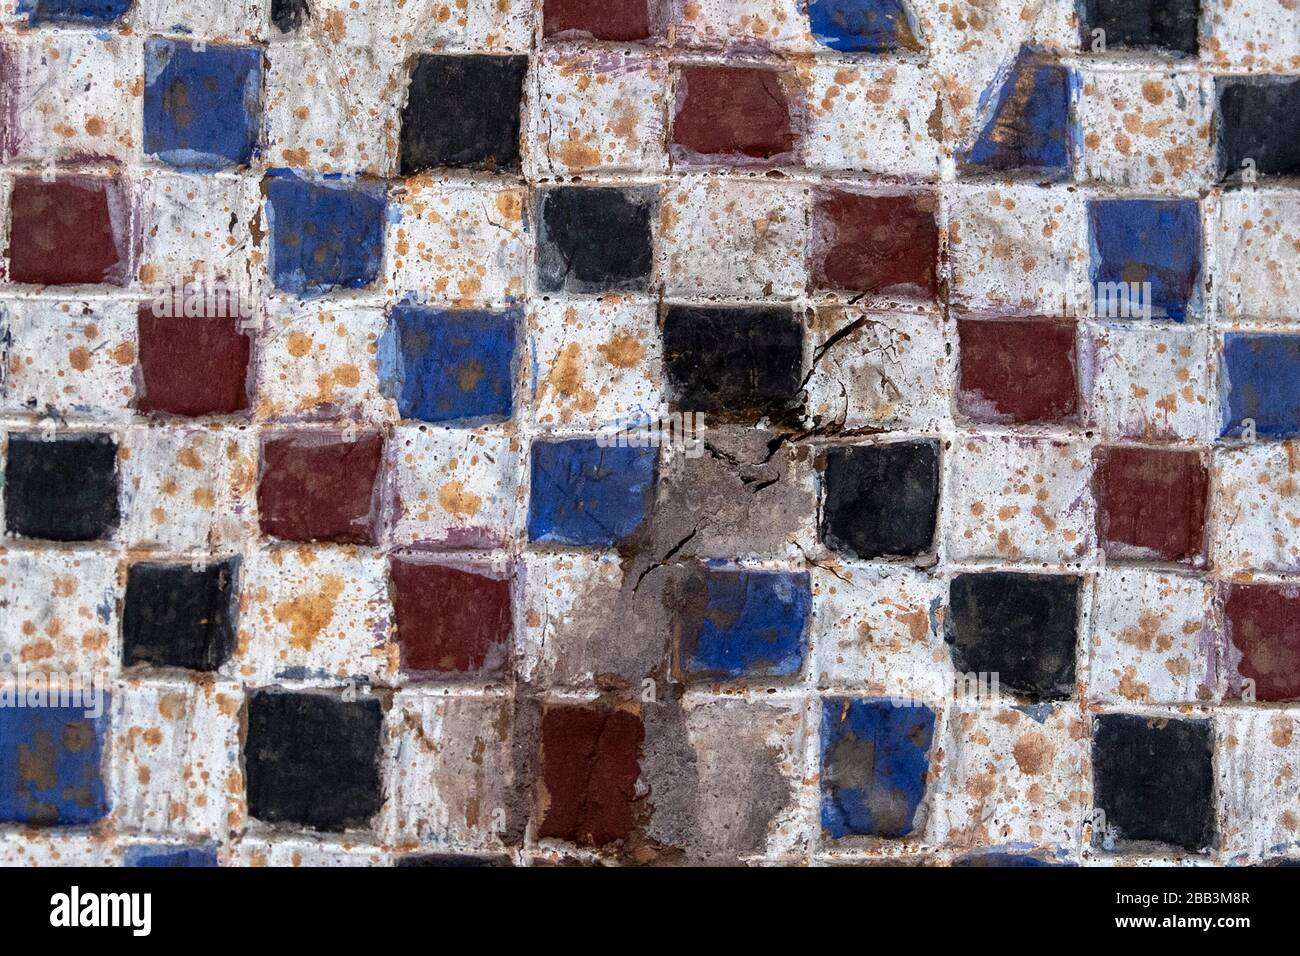 https www alamy com old ceramic tiles wall background white red black blue image351050359 html